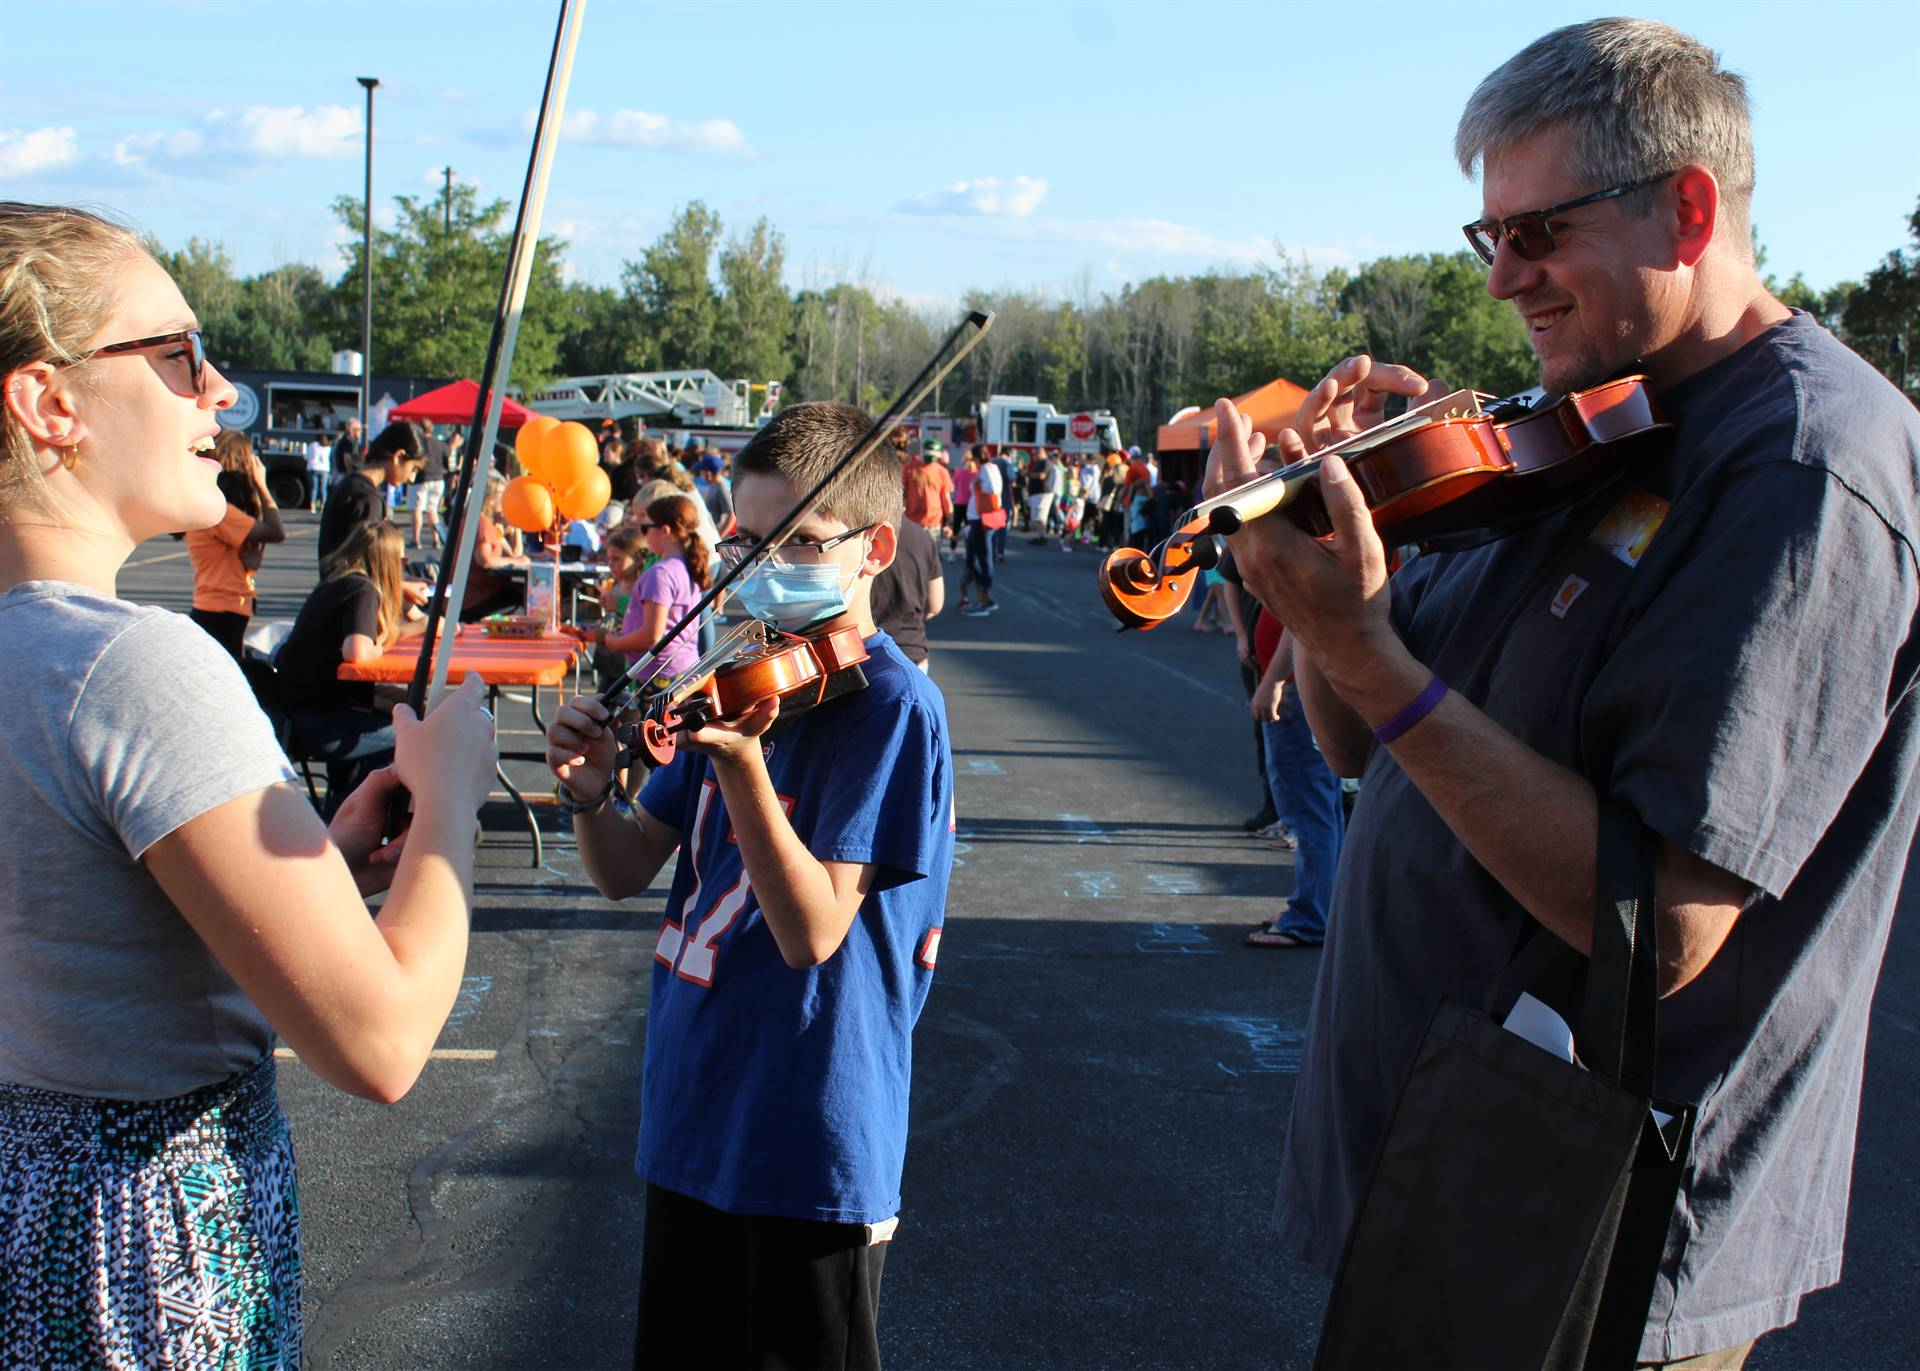 Music teacher demonstrating violins to student and parent